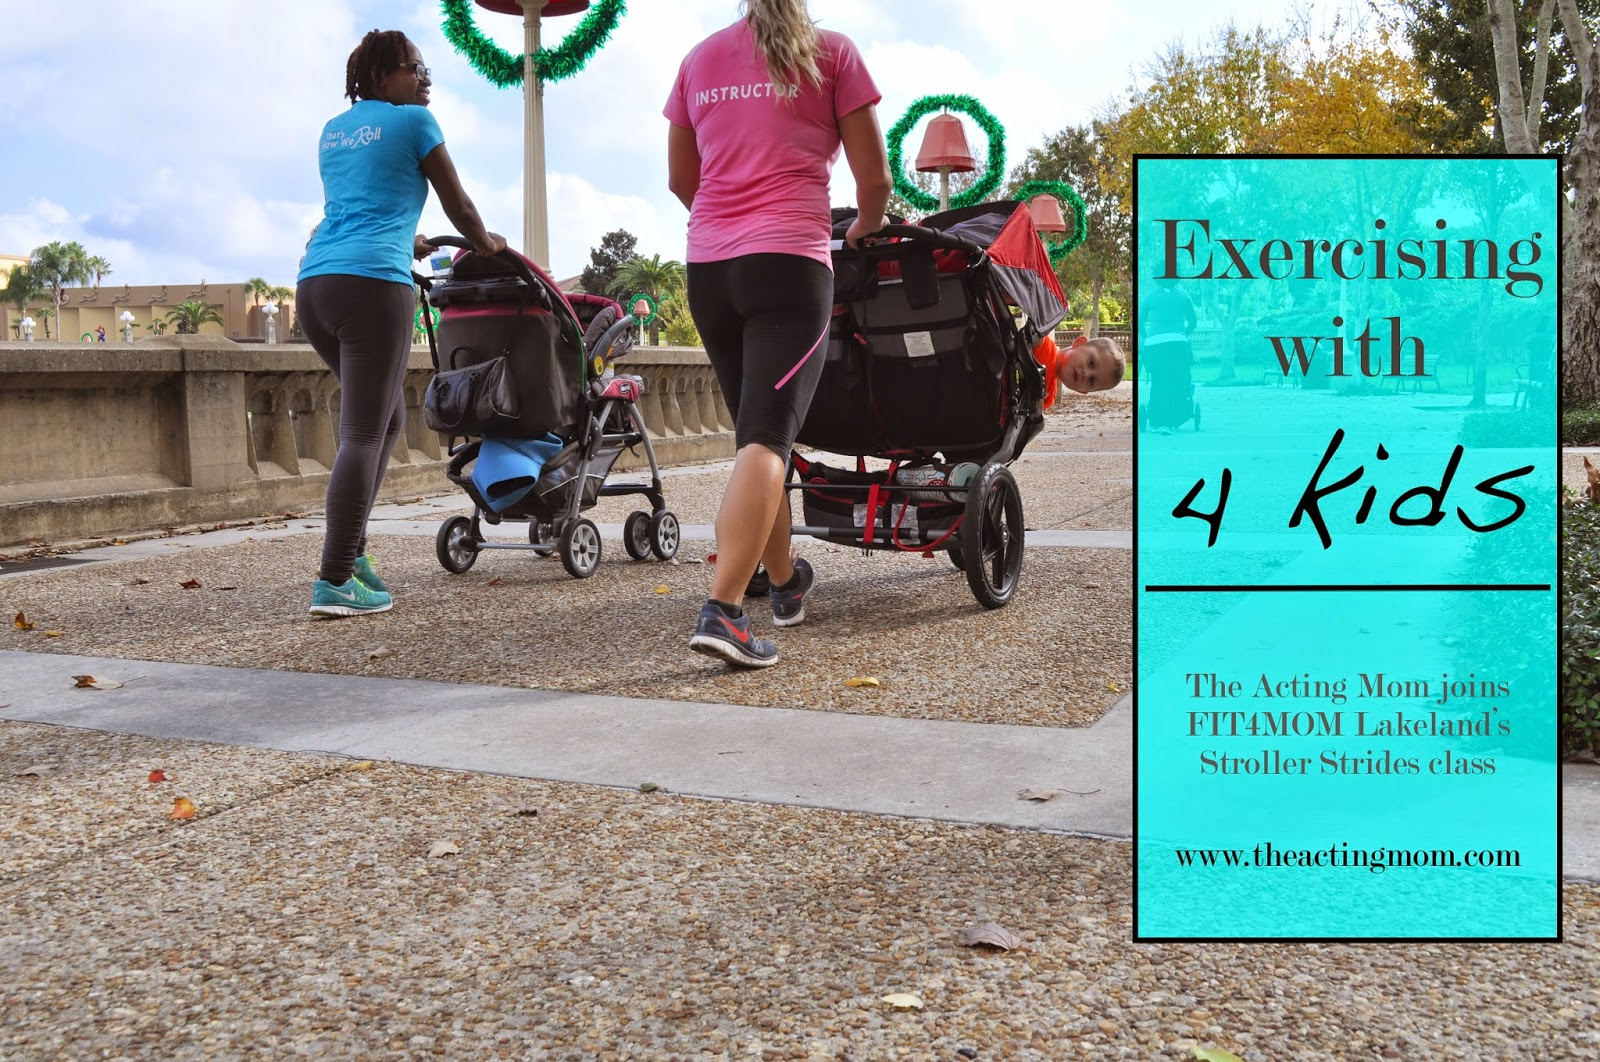 Exercising with FIT4MOM Lakeland's Stroller Stride class